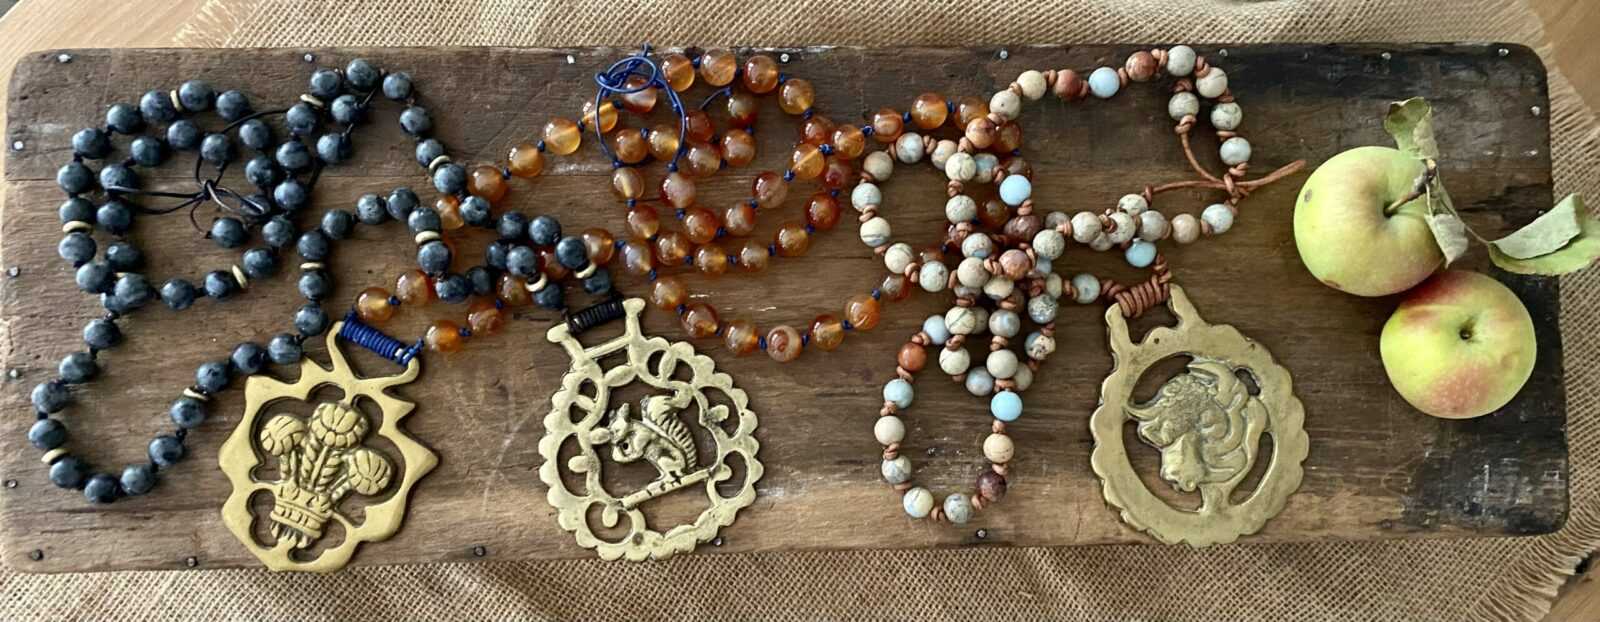 Welcome To The Brassy Lass - Jewelry With a Past